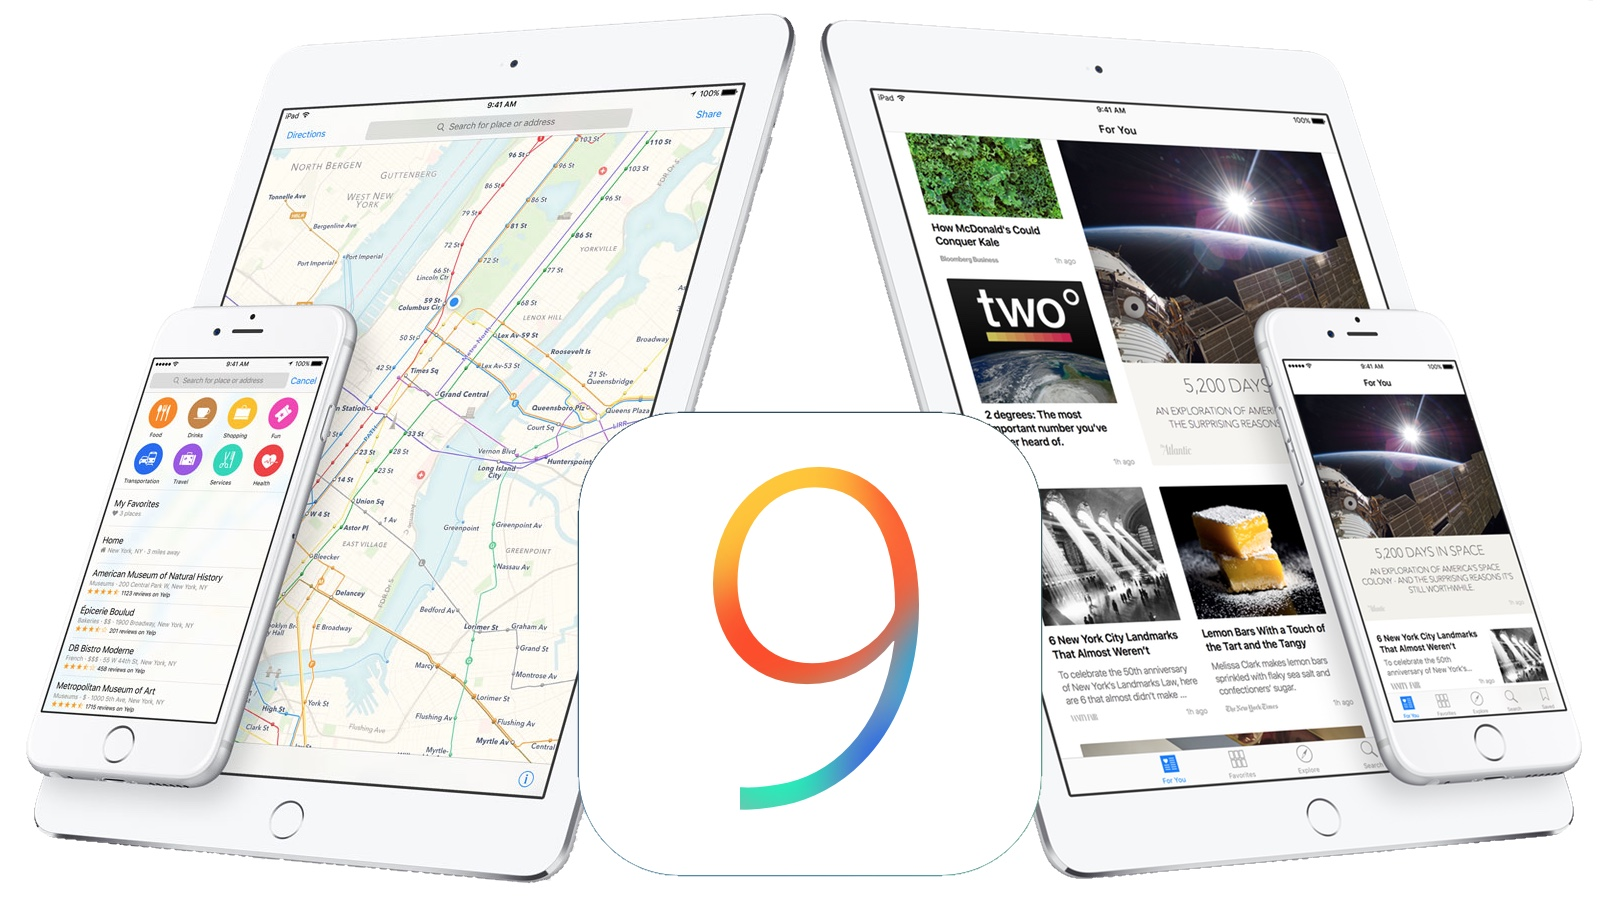 New in iOS 9 Beta 4: New Handoff, 2015 iPod touch Support, More